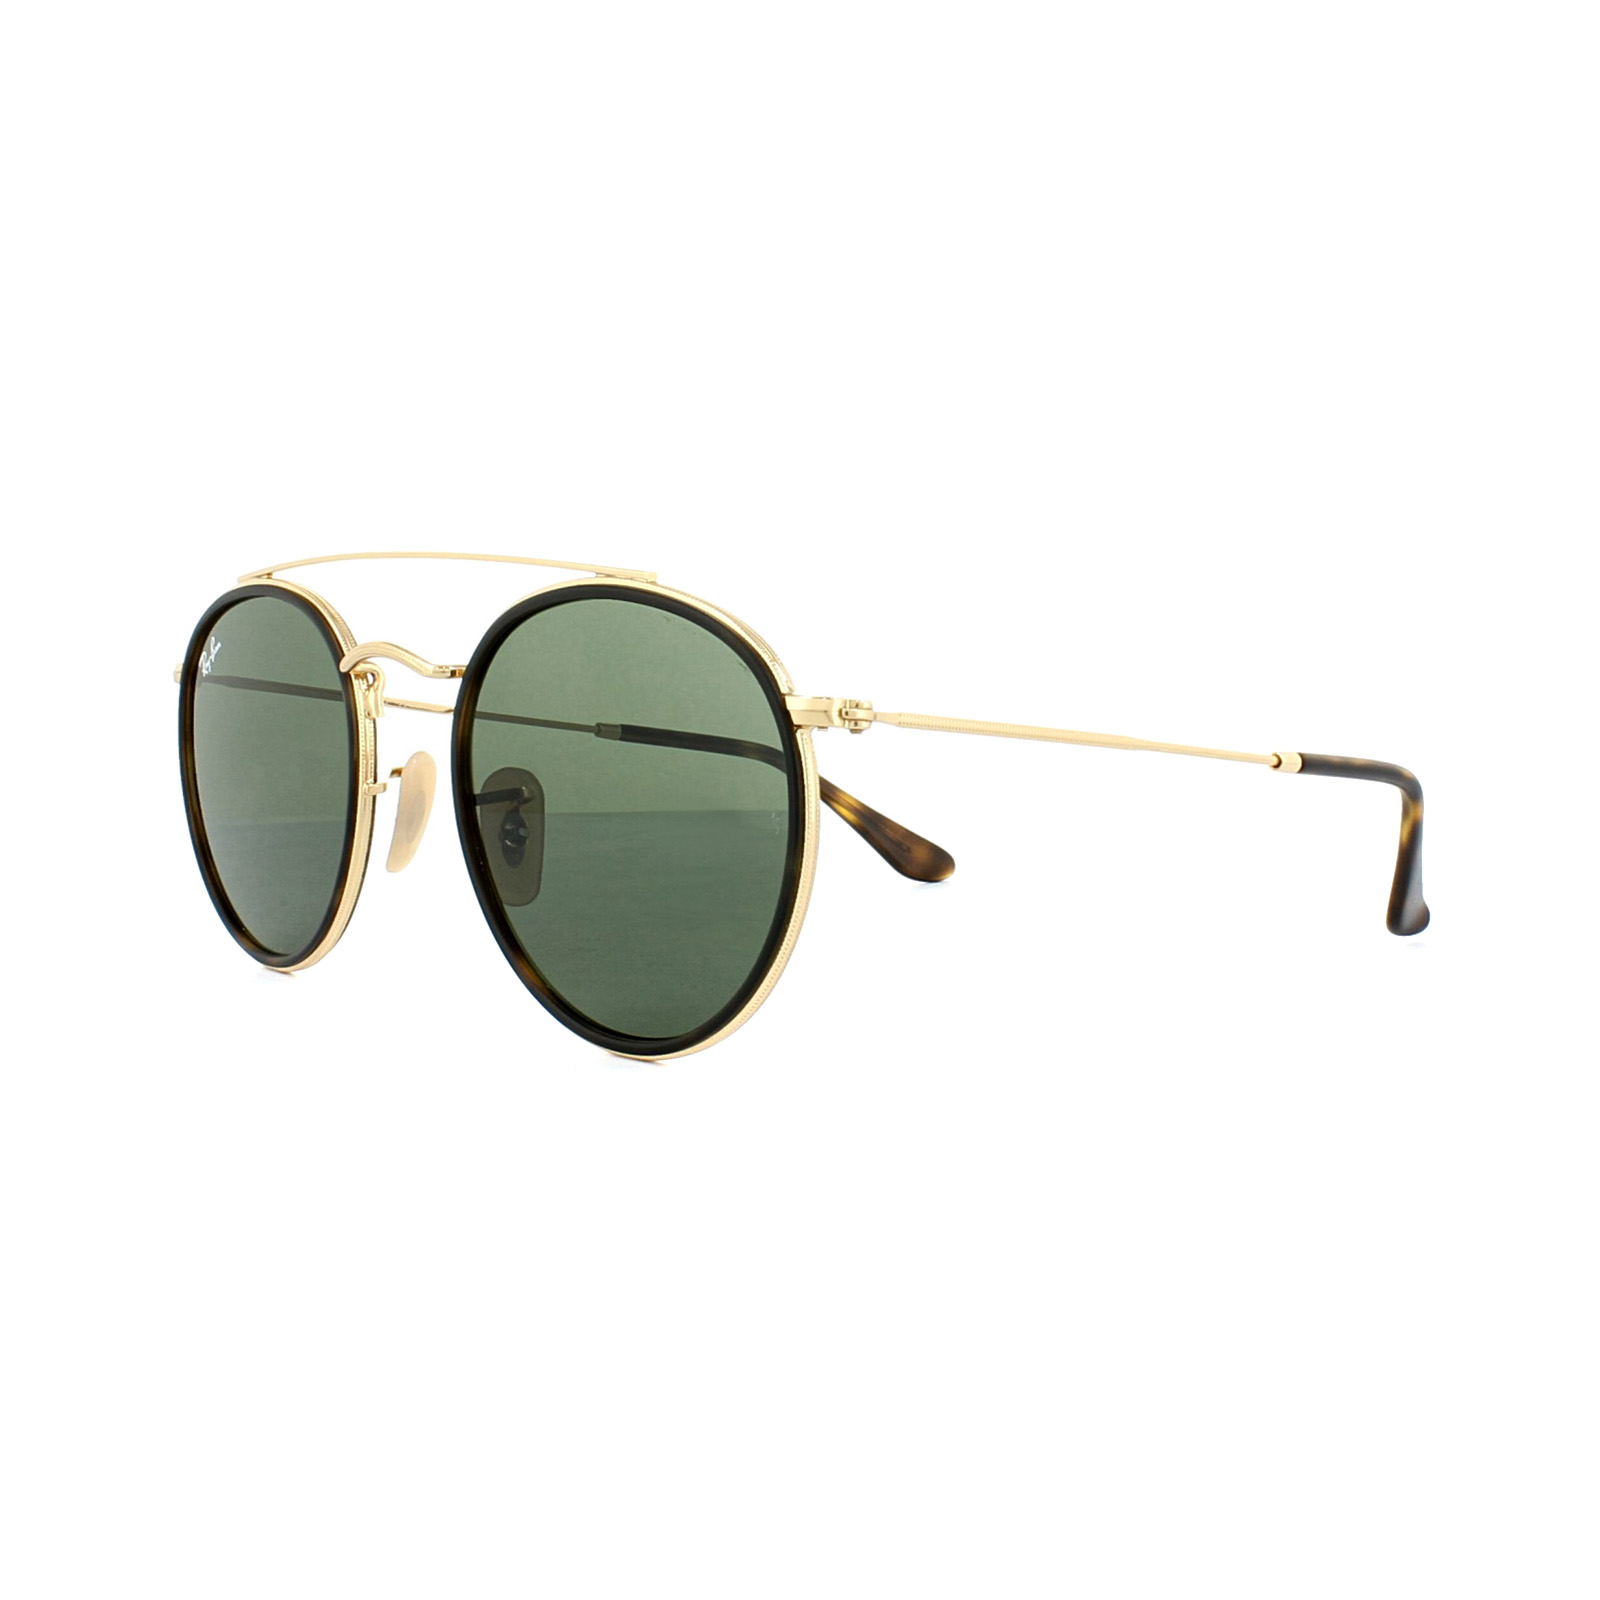 Sentinel Ray-Ban Sunglasses Round Double Bridge 3647N 001 Gold Green 2ce8900c8b